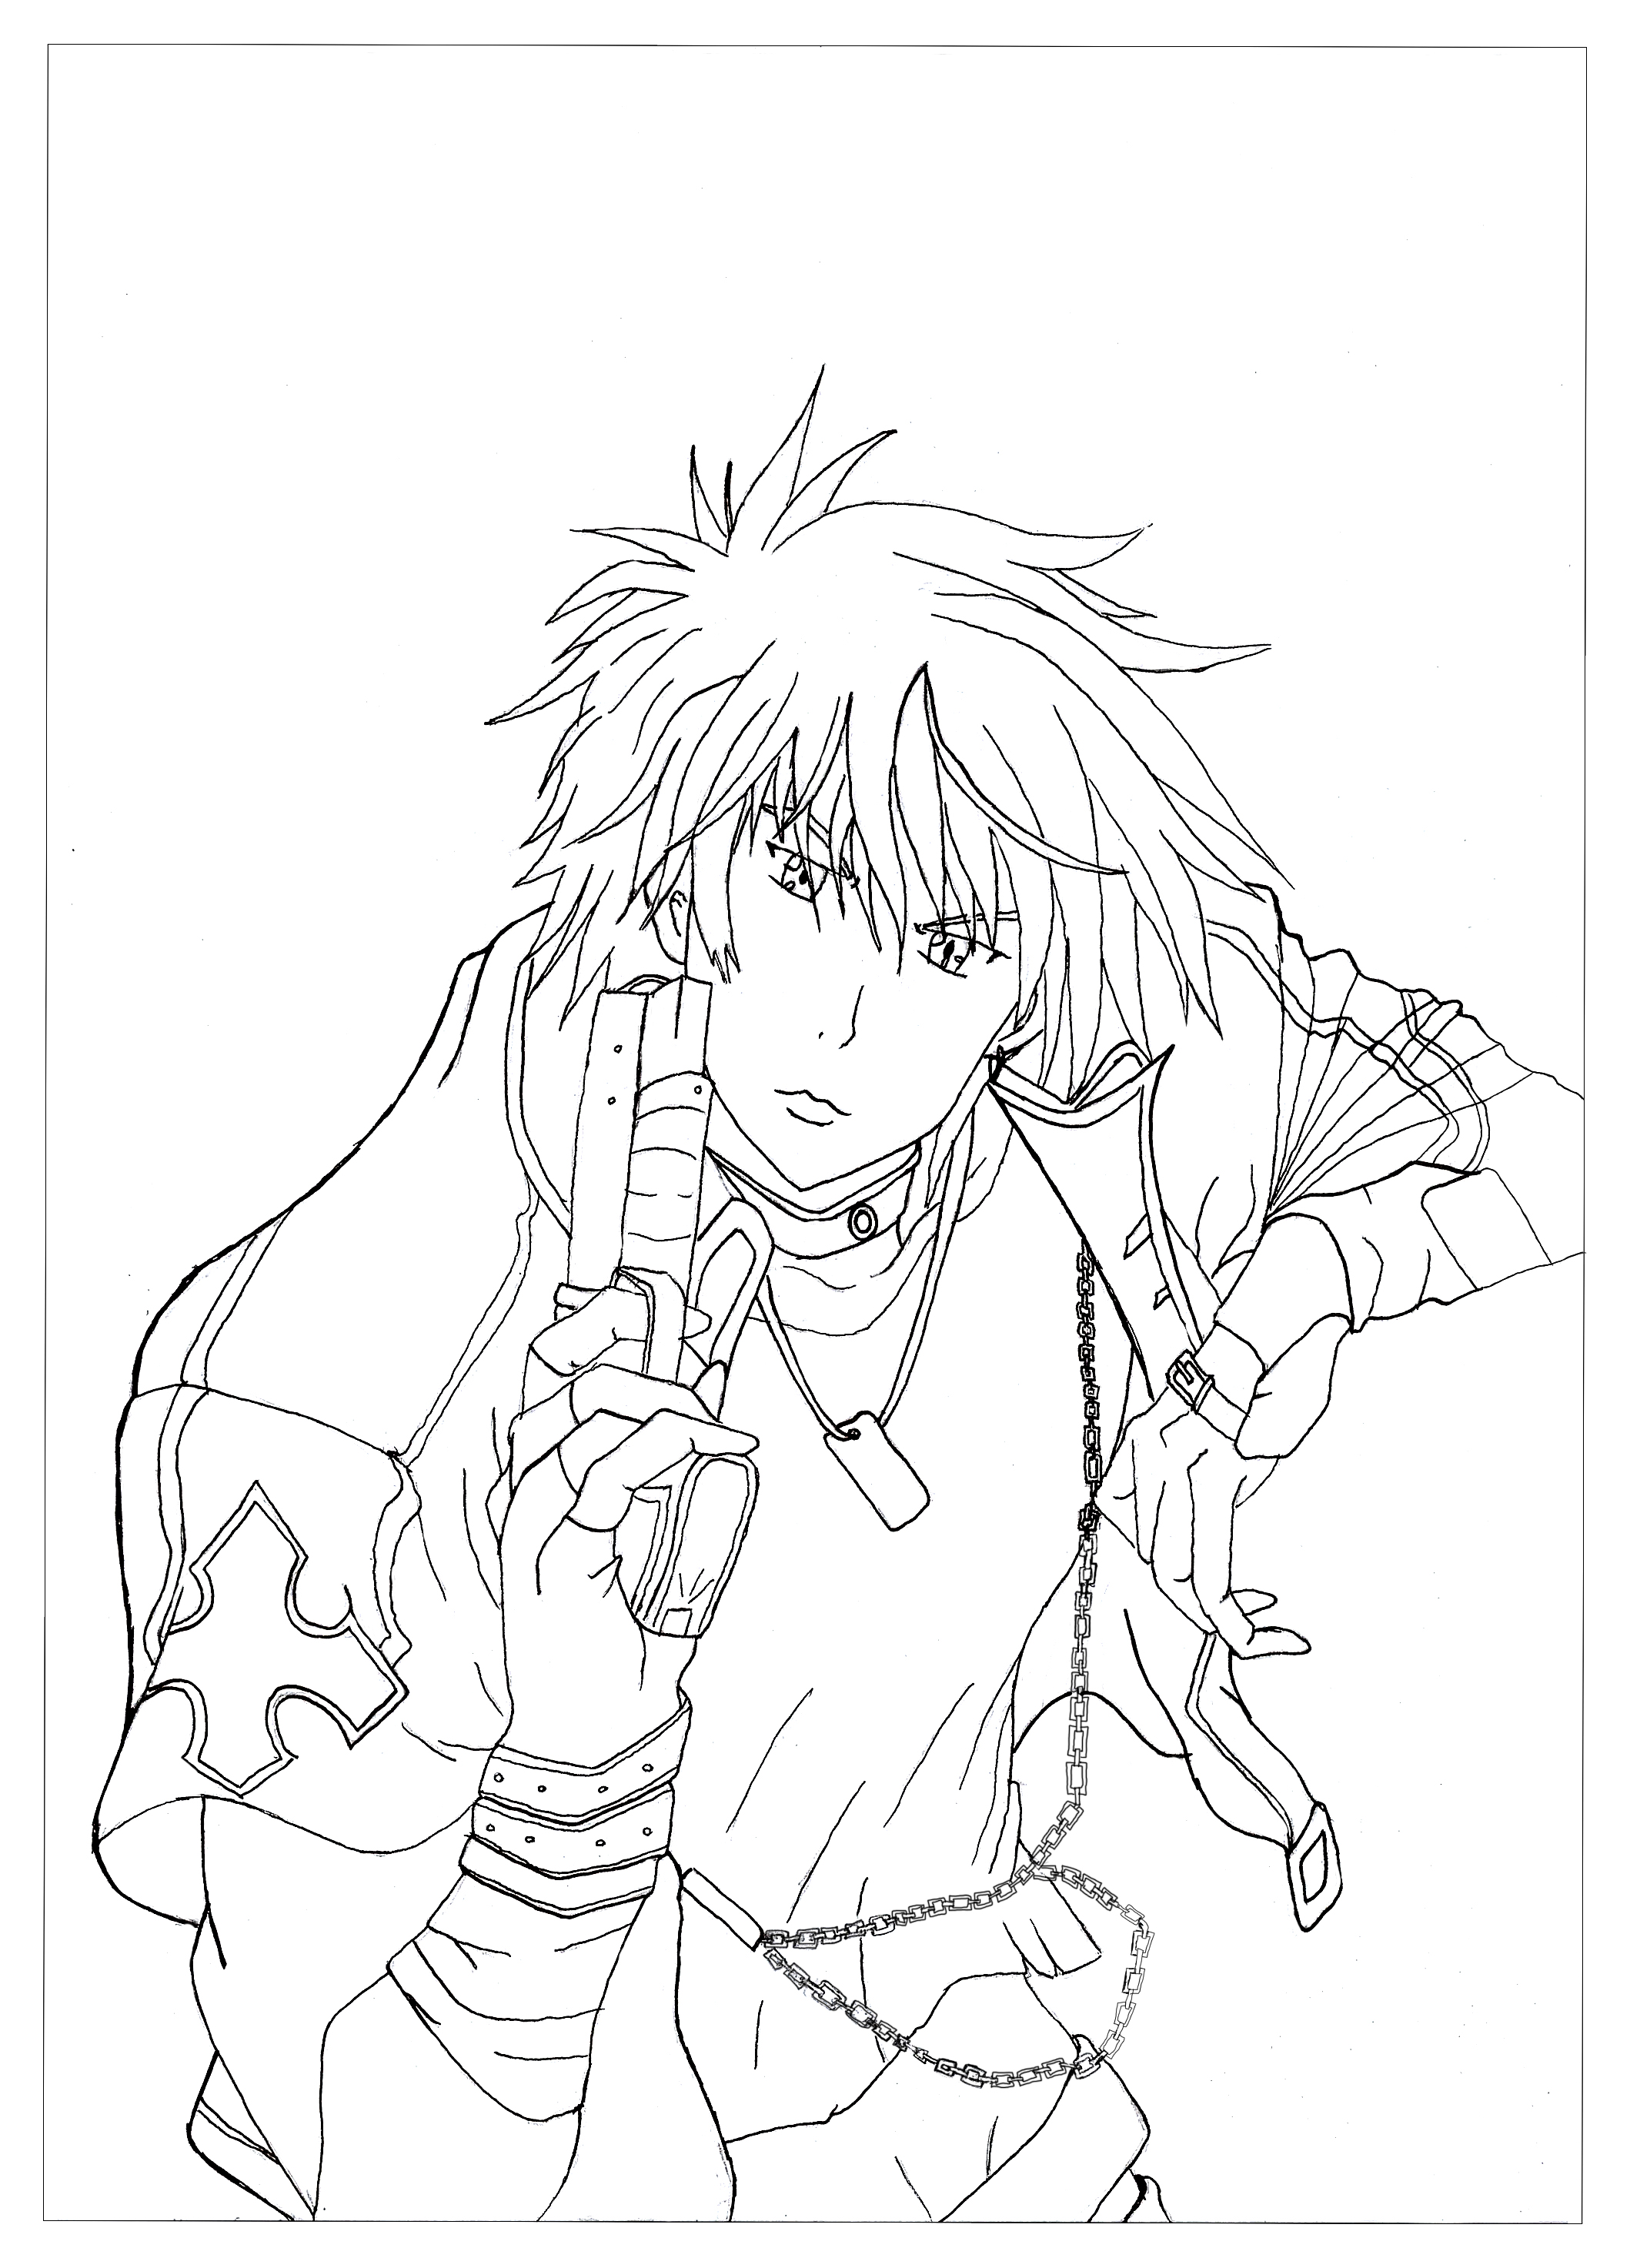 cool anime coloring pages at getdrawings  free download